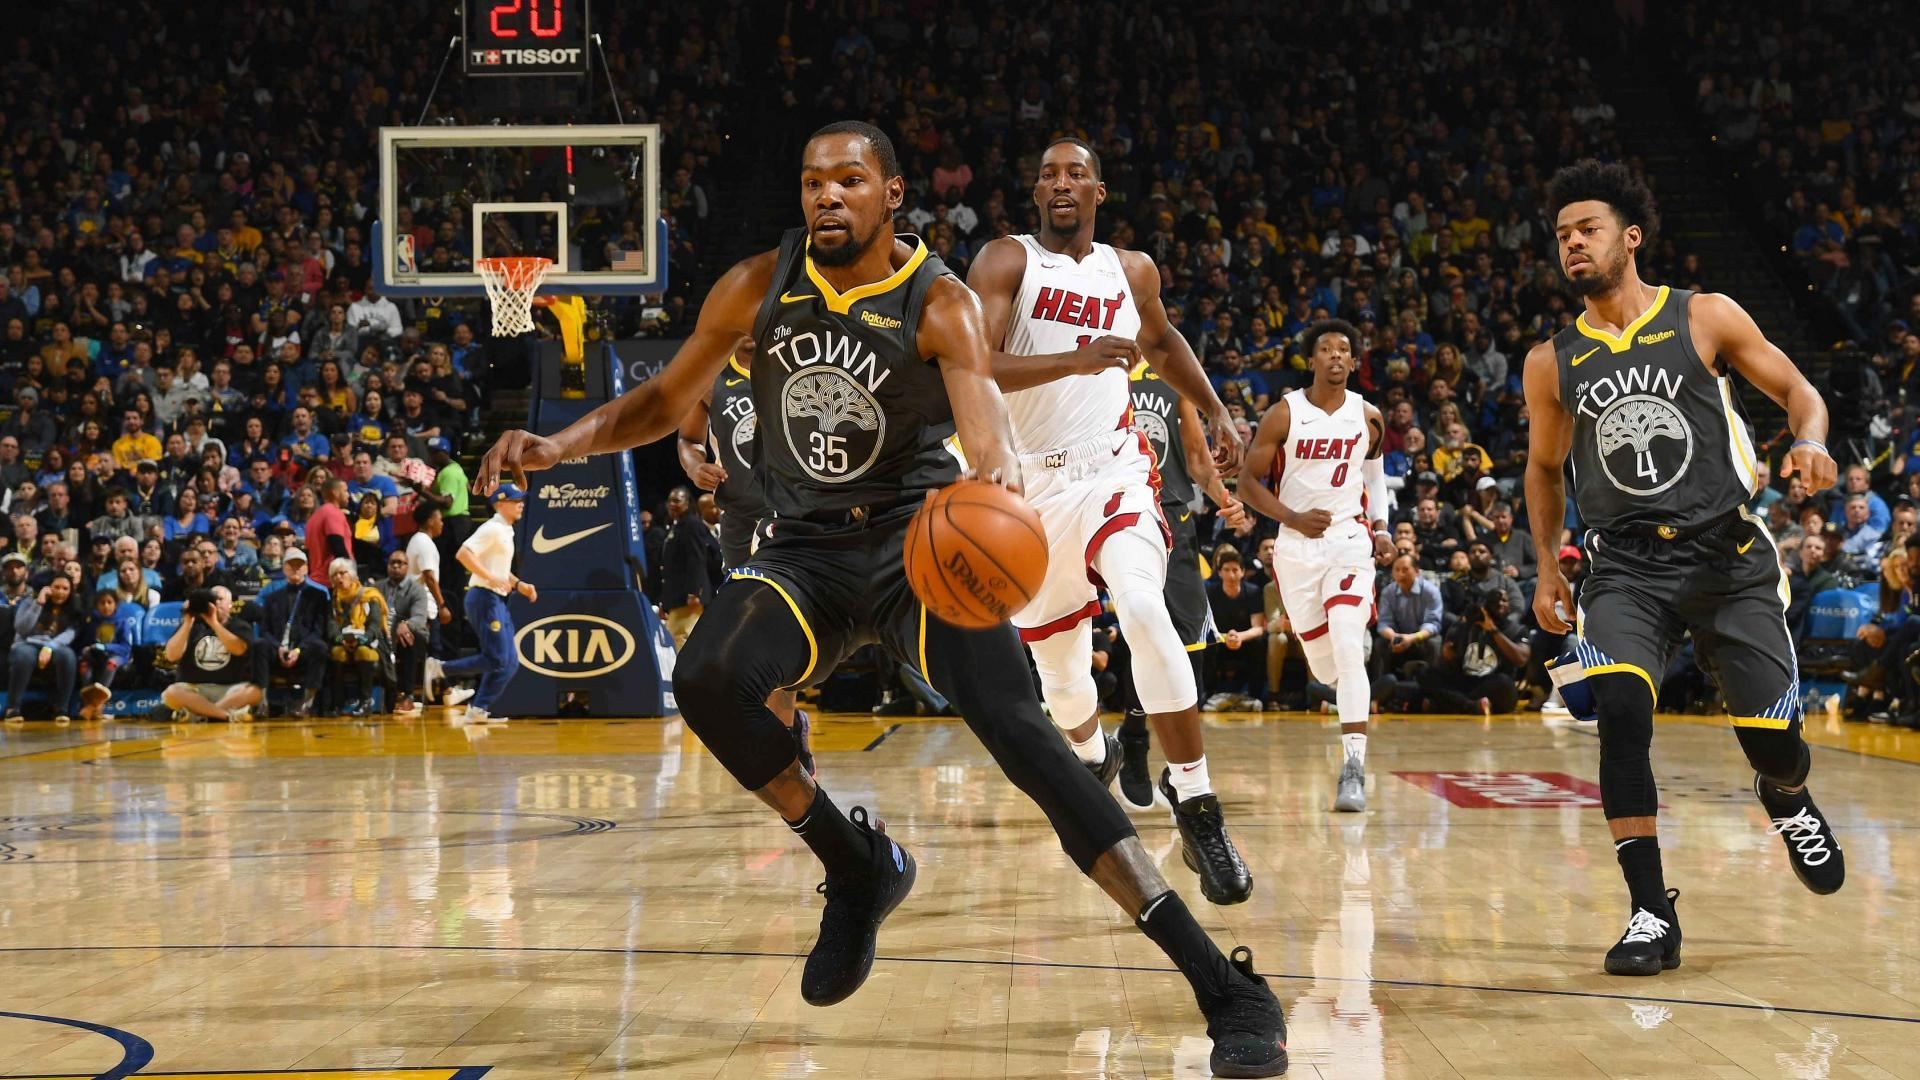 f7bc5bf8e255 NBA says key call missed in Heat-Warriors game. Kevin Durant discontinued  ...